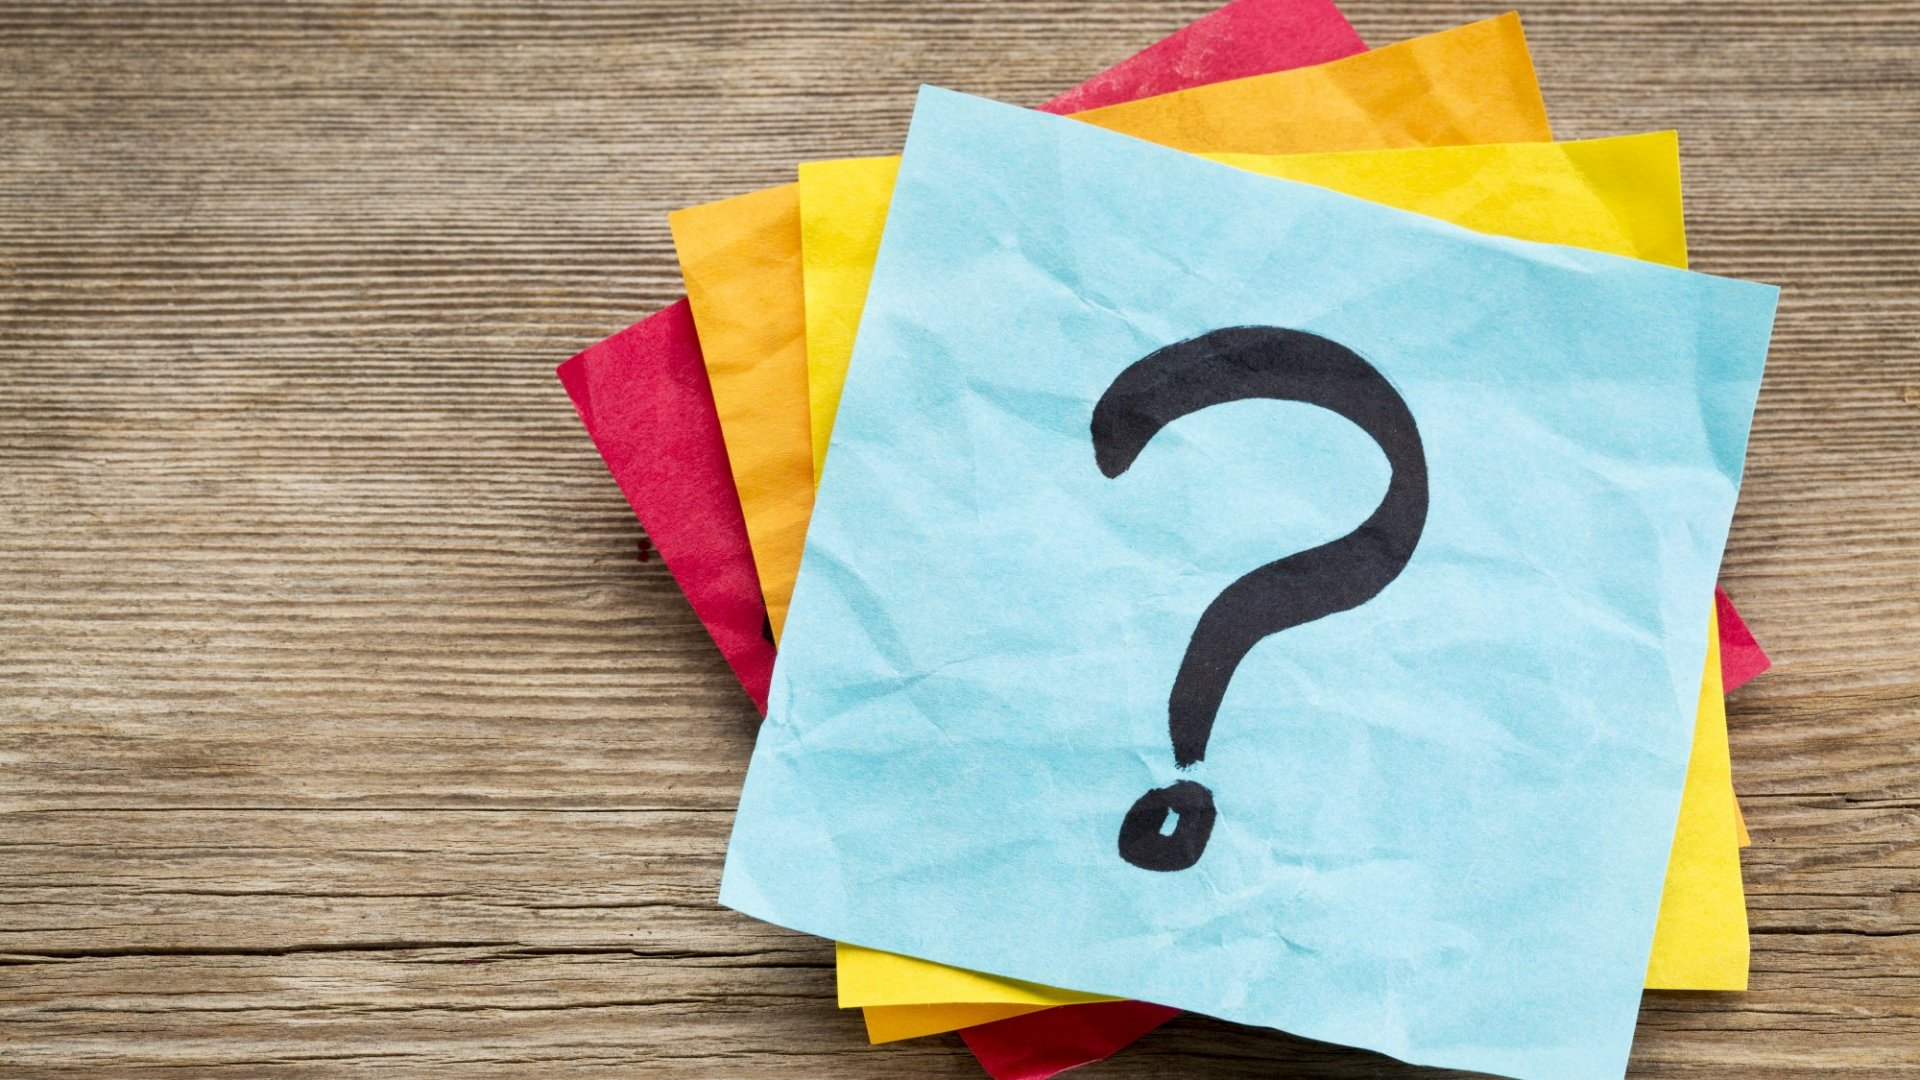 5 Common Mistakes to Avoid When Asking a Question